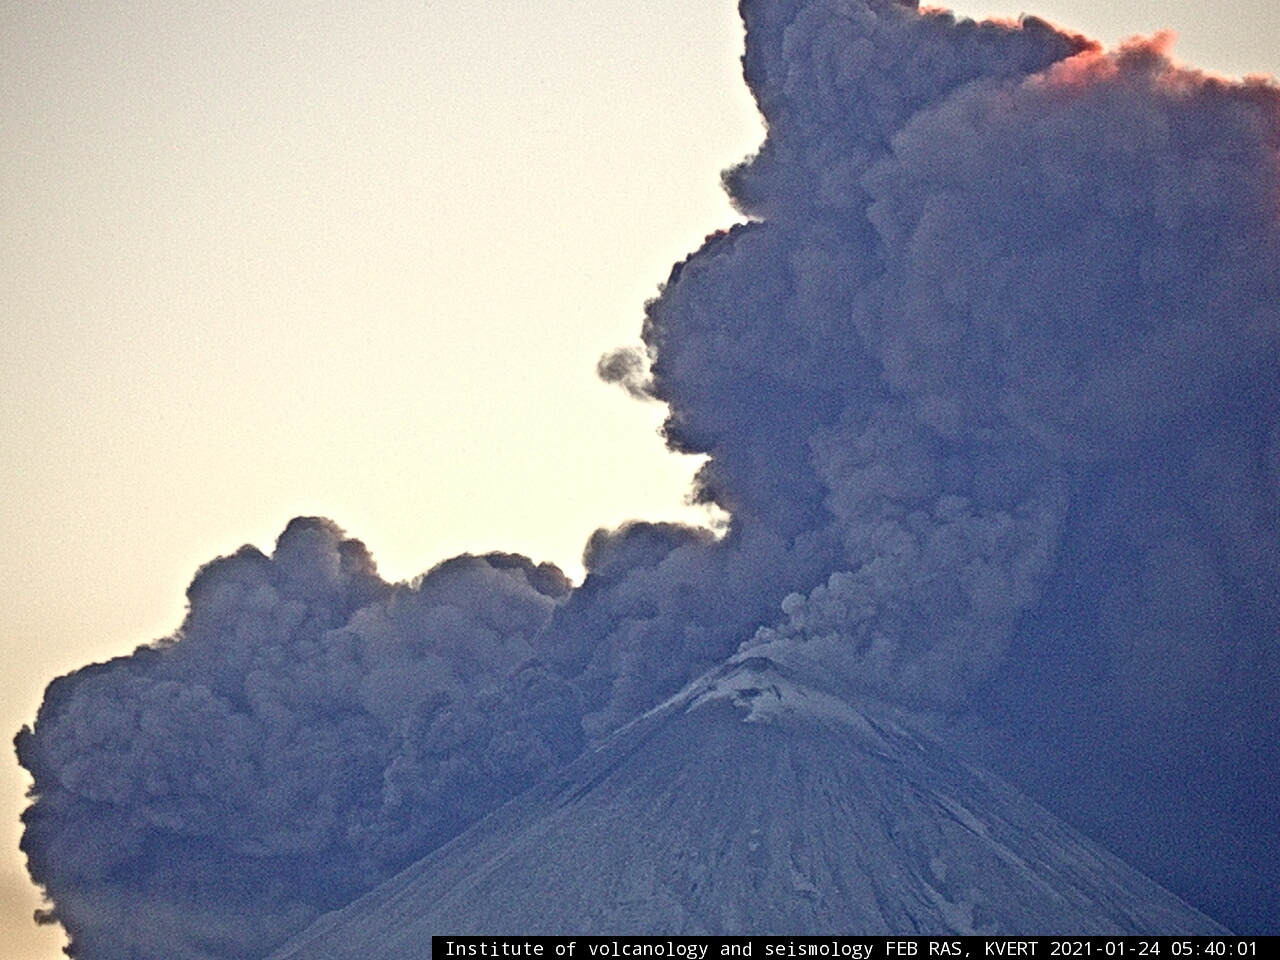 Pyroclastic flow on Klyuchevskoy volcano earlier today (image: KVERT webcam)